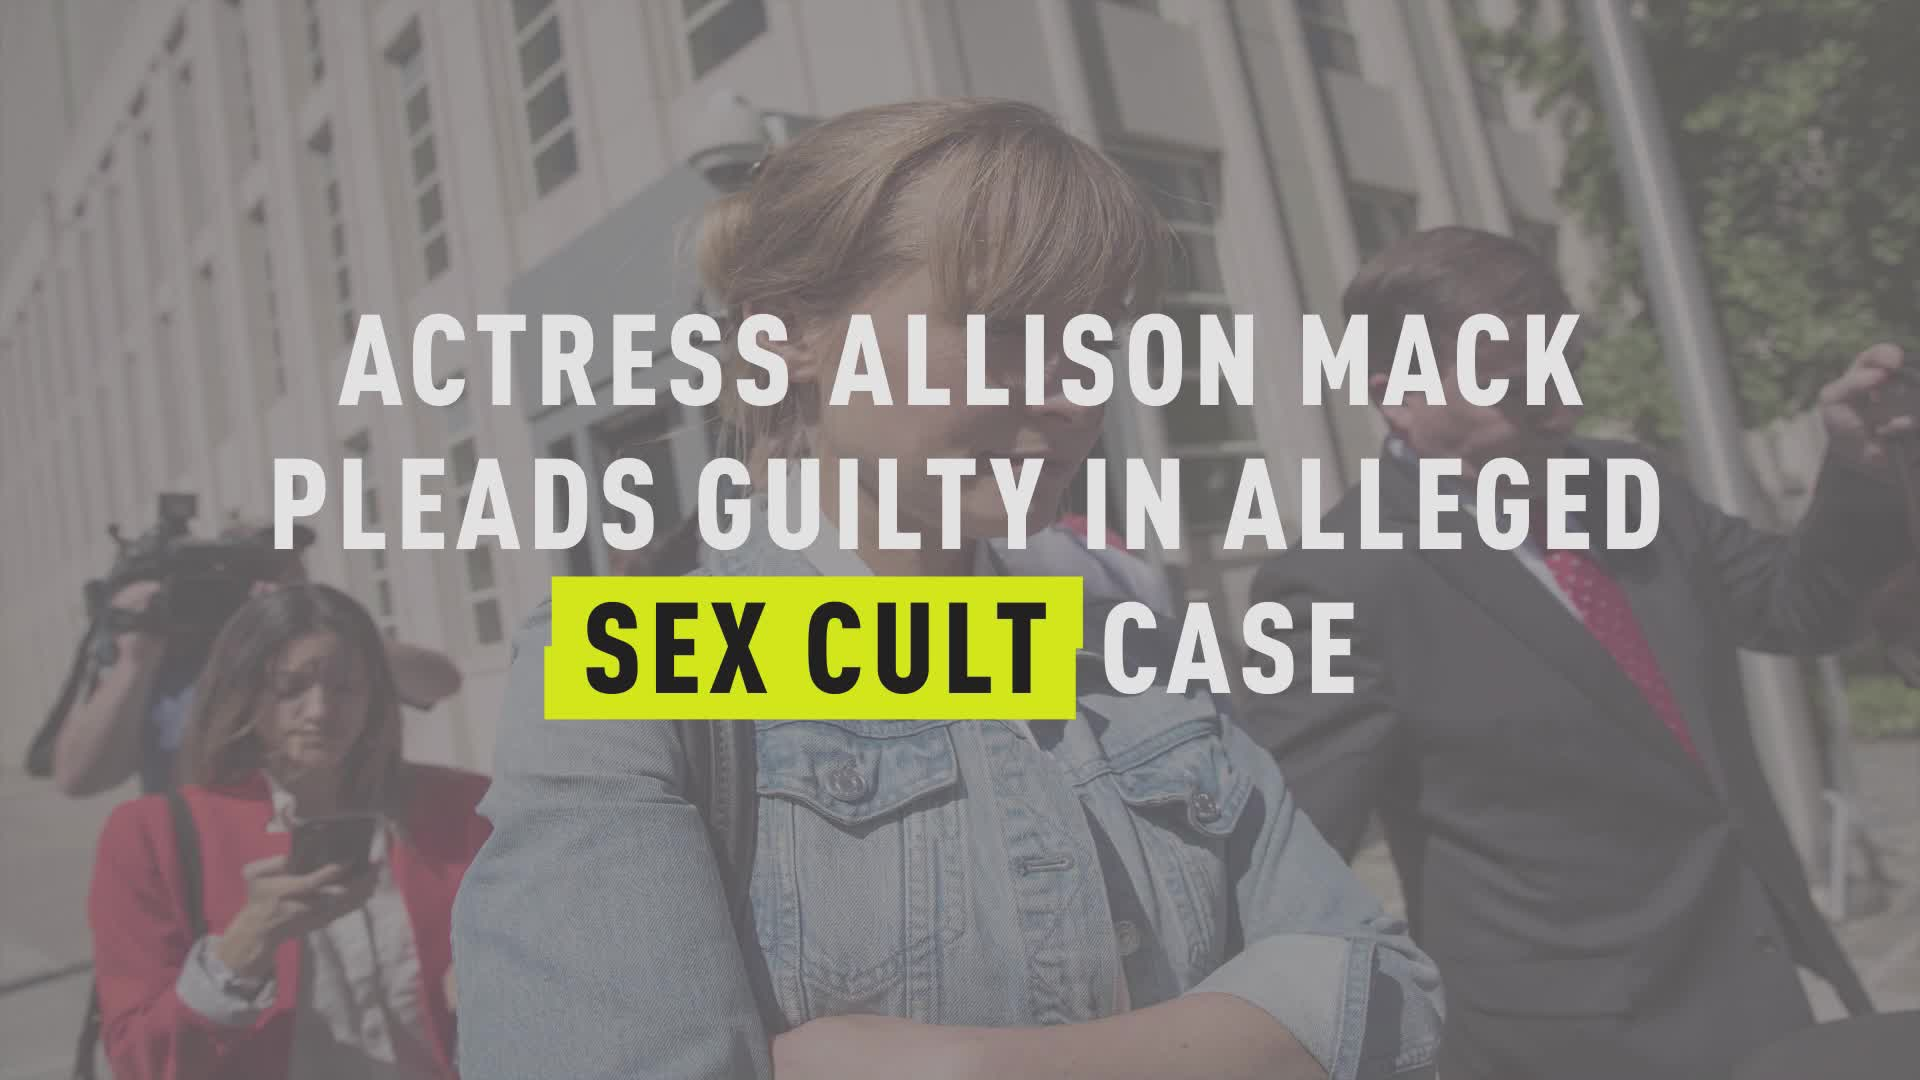 Allison Mack Porn Video actress allison mack pleads guilty in alleged sex cult case